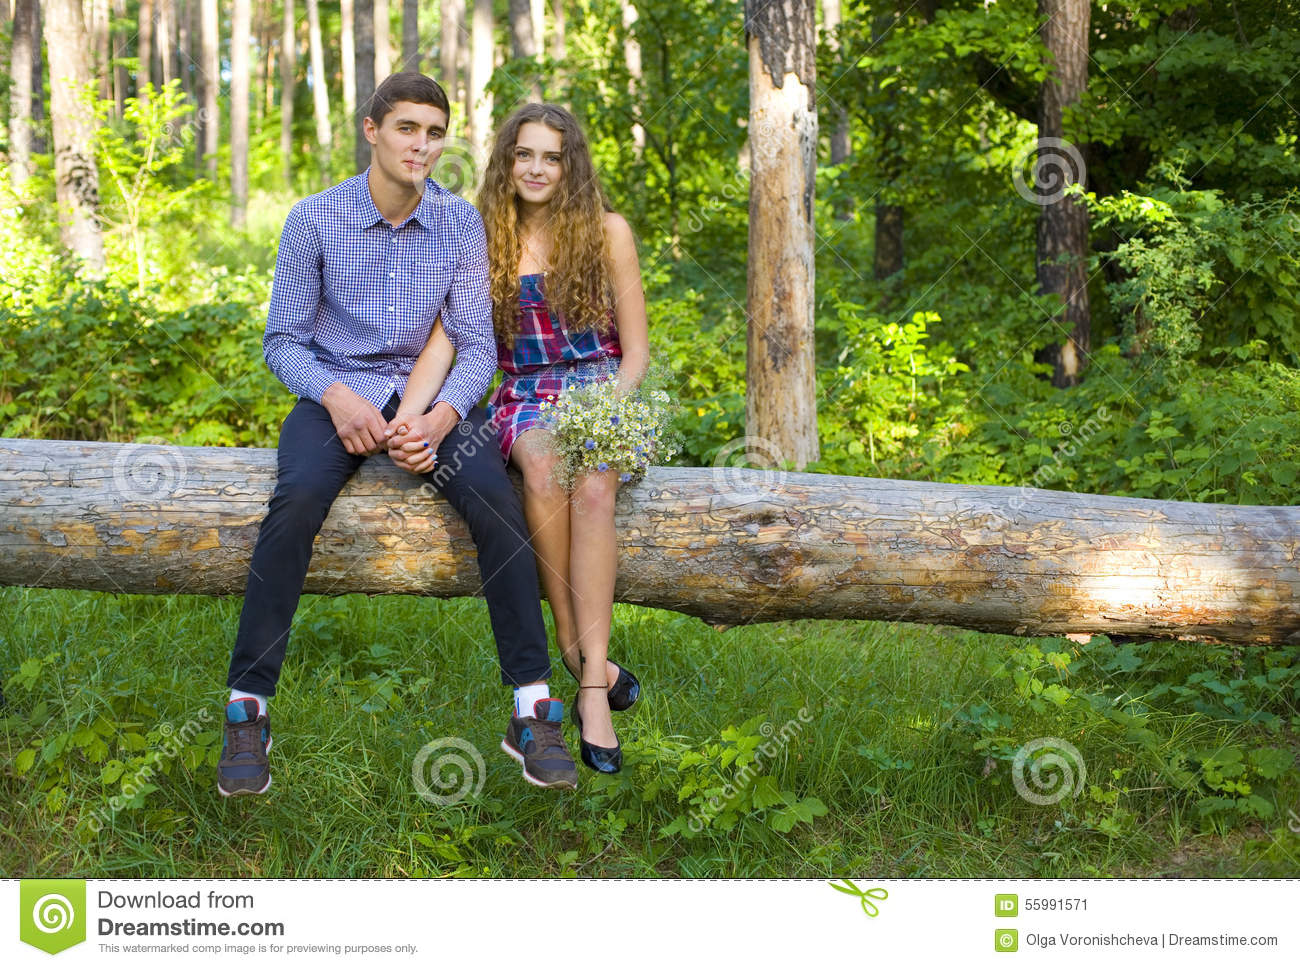 Boy and girl dating story